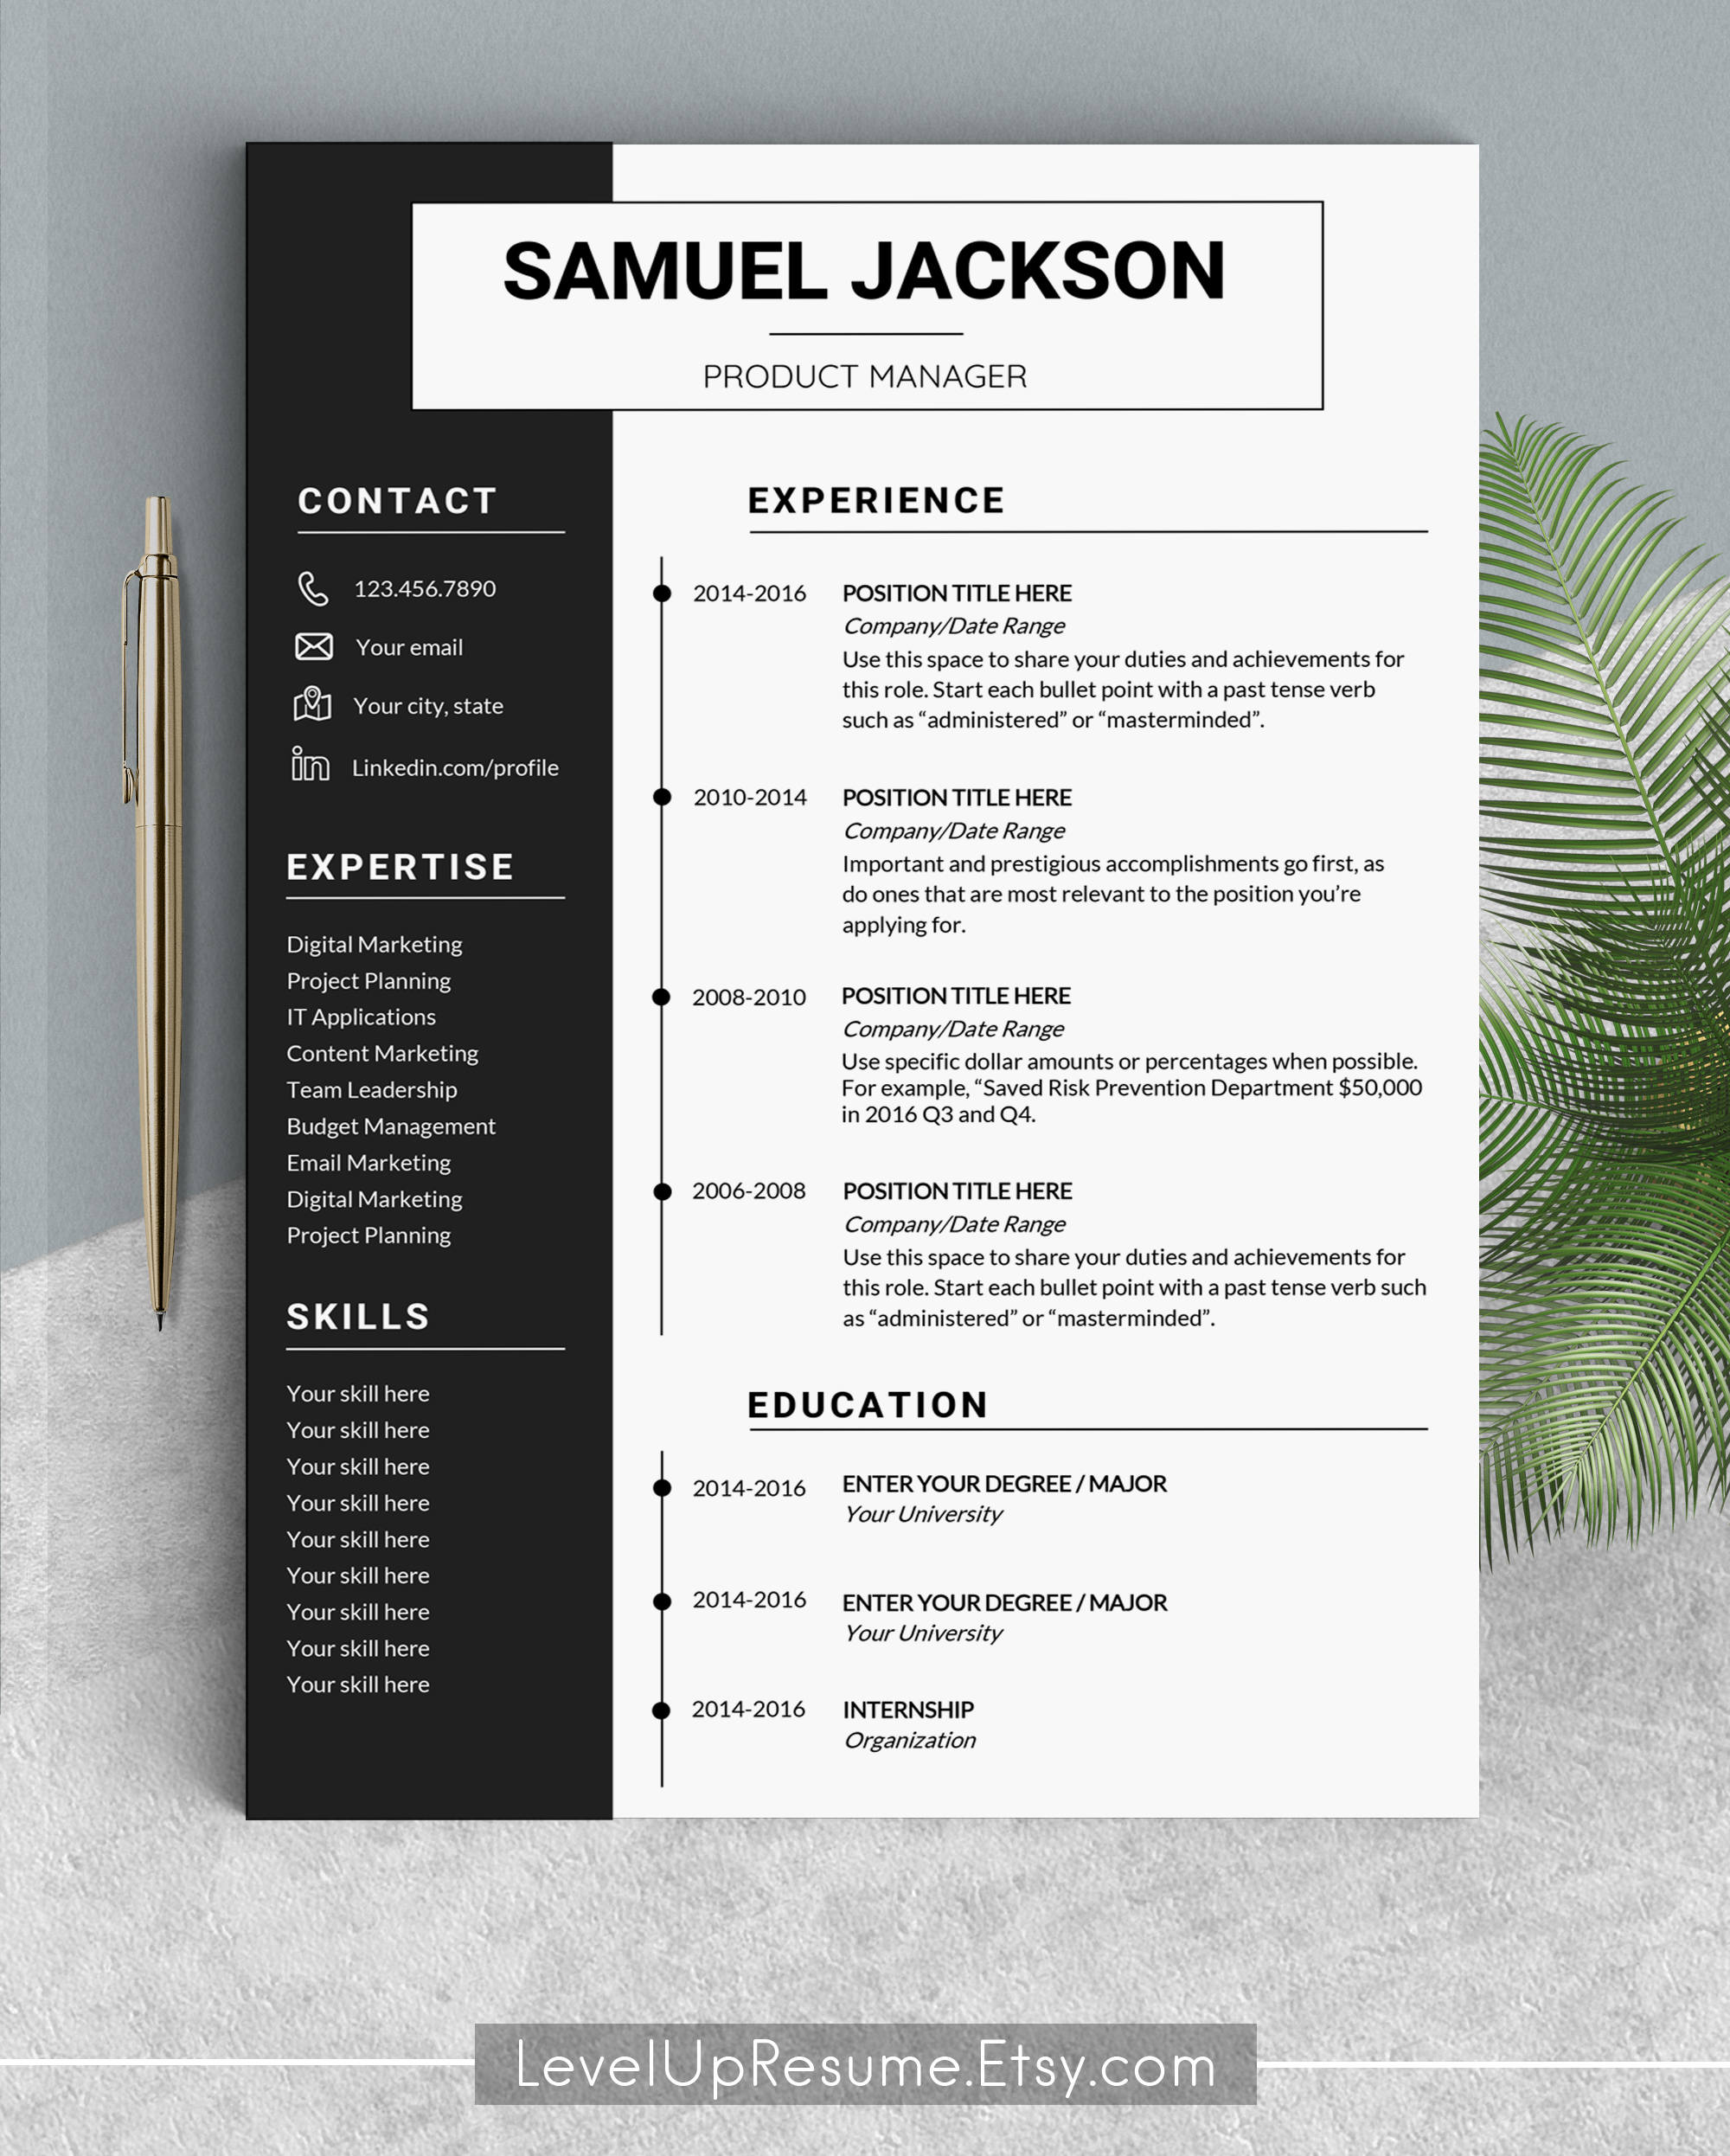 Where To Find Resume Templates On Word: Professional Resume Template Design Resume Templates